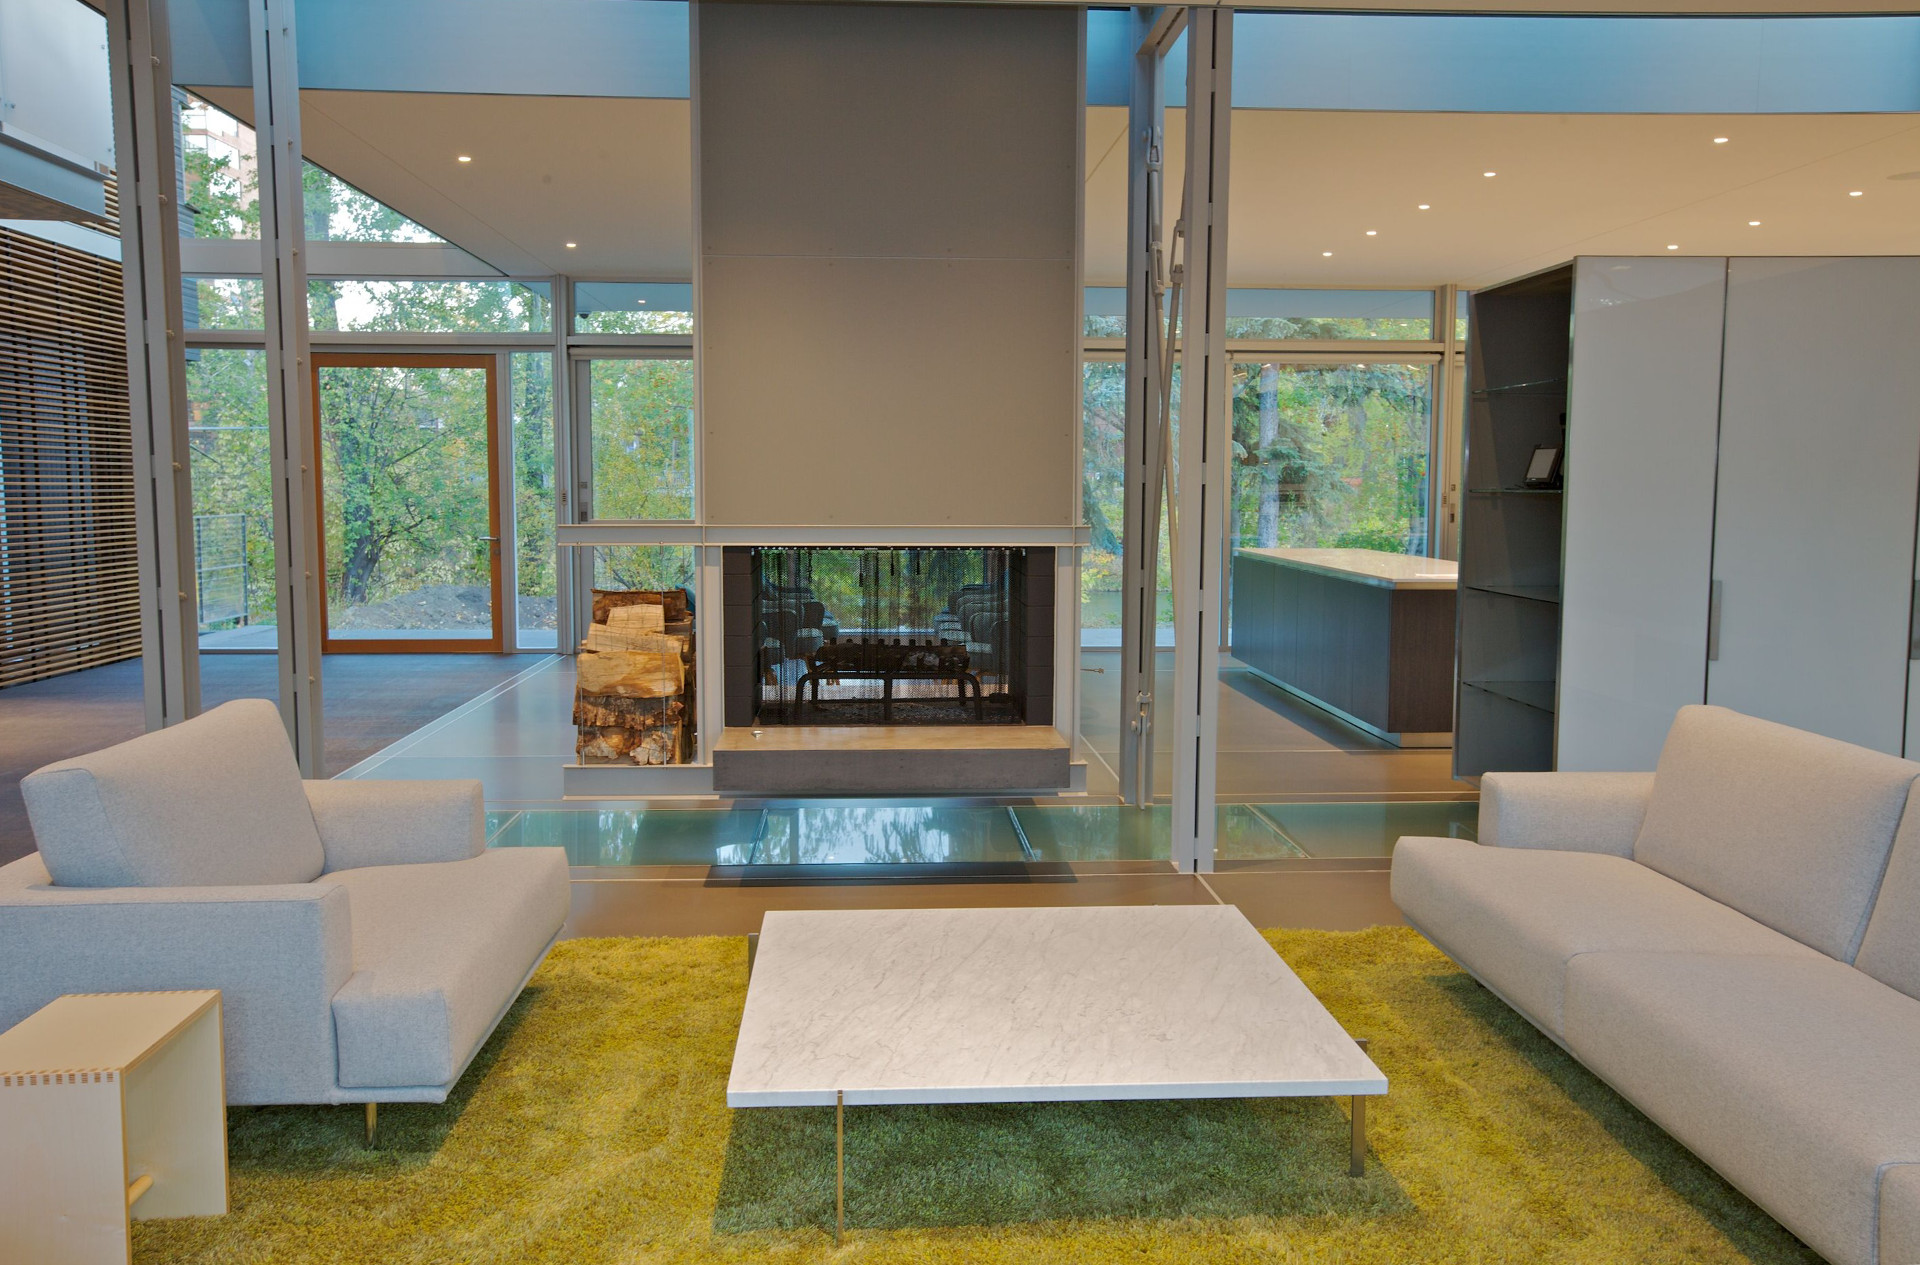 Custom glass floor, hinged door, aluminum details